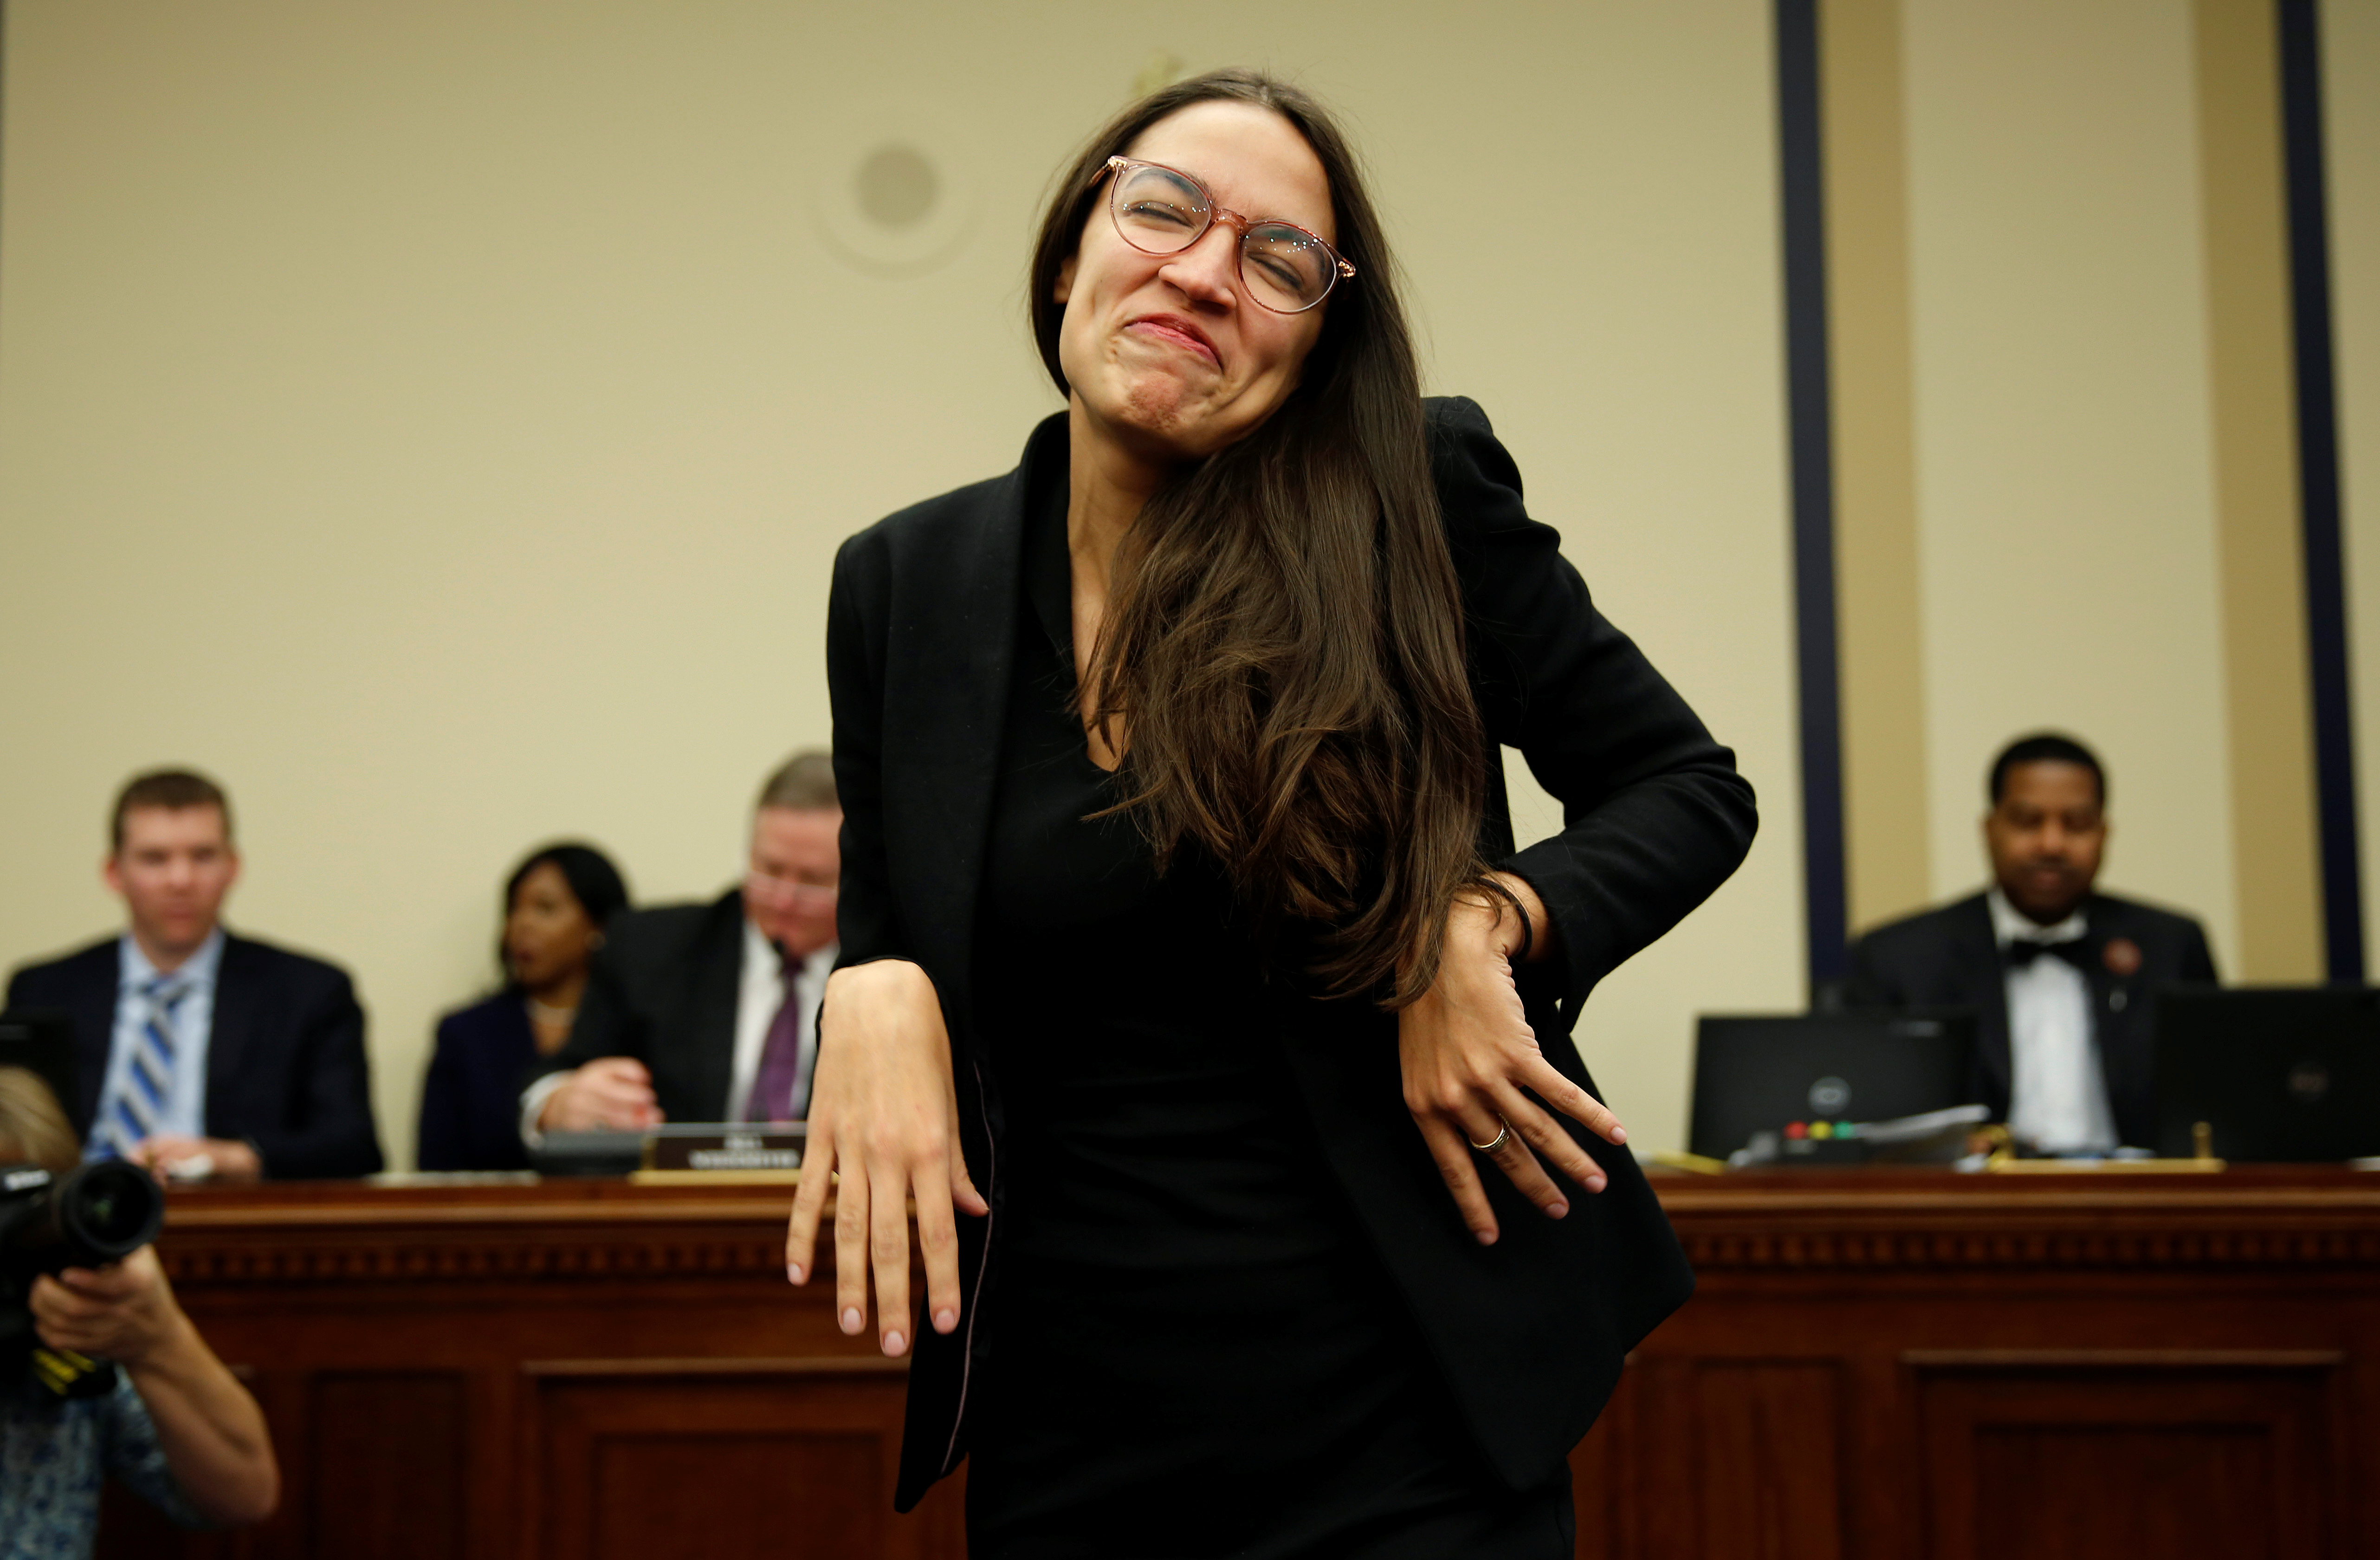 Representative-elect Alexandria Ocasio Cortez (D-NY) reacts to drawing number 40 during a lottery for office assignments on Capitol Hill in Washington, U.S., November 30, 2018. REUTERS/Joshua Roberts